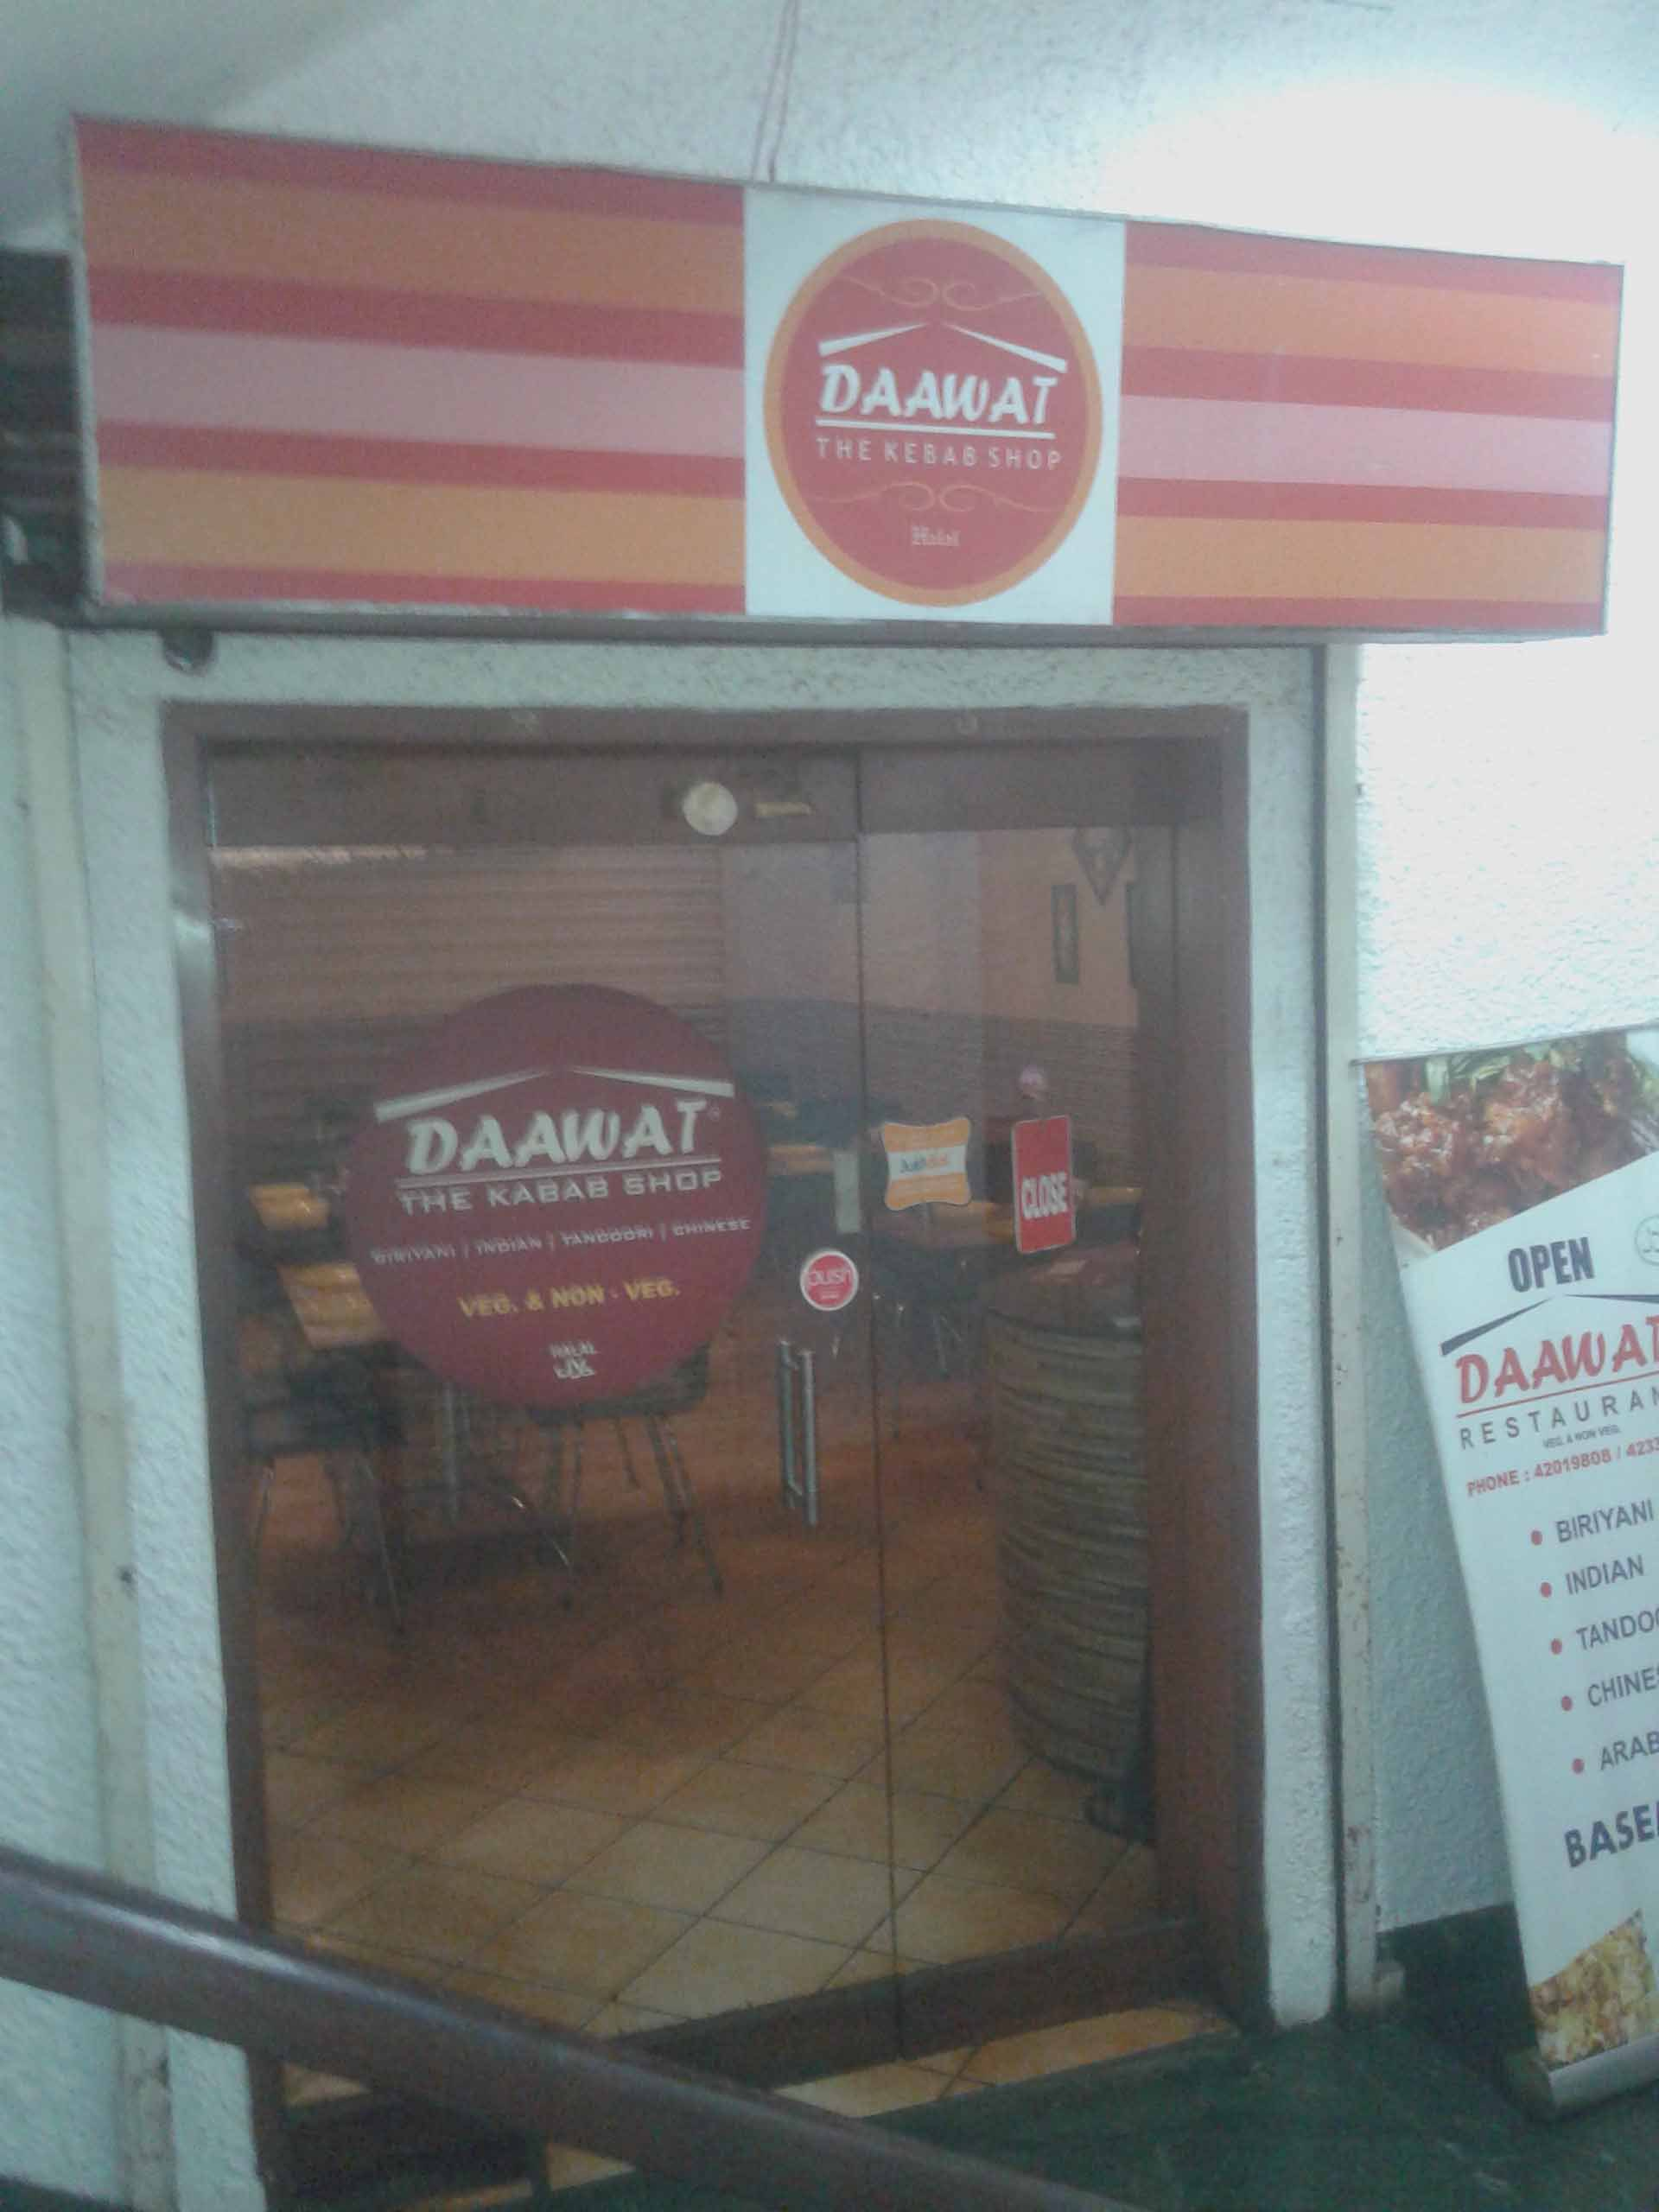 Daawat - The Kabab Shop - Adyar - Chennai Image